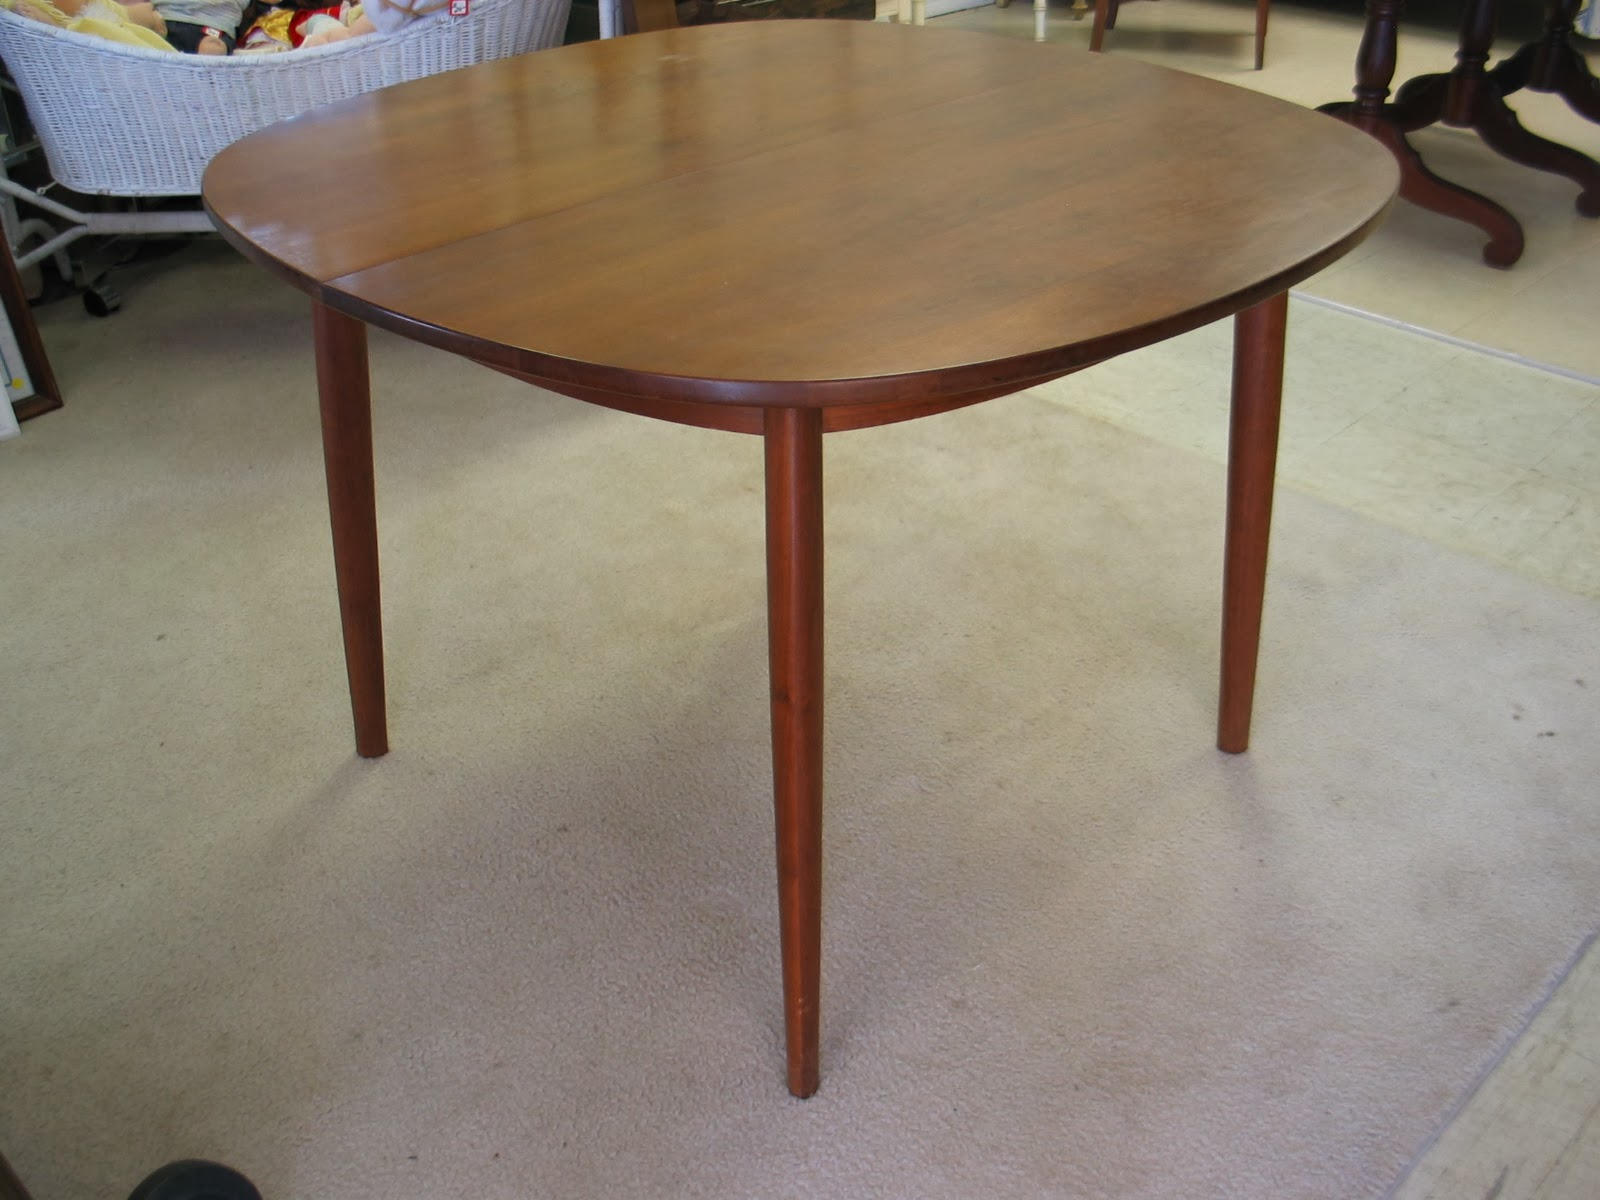 Parallel By Drexel Dining Table W/ Leaf Part 51